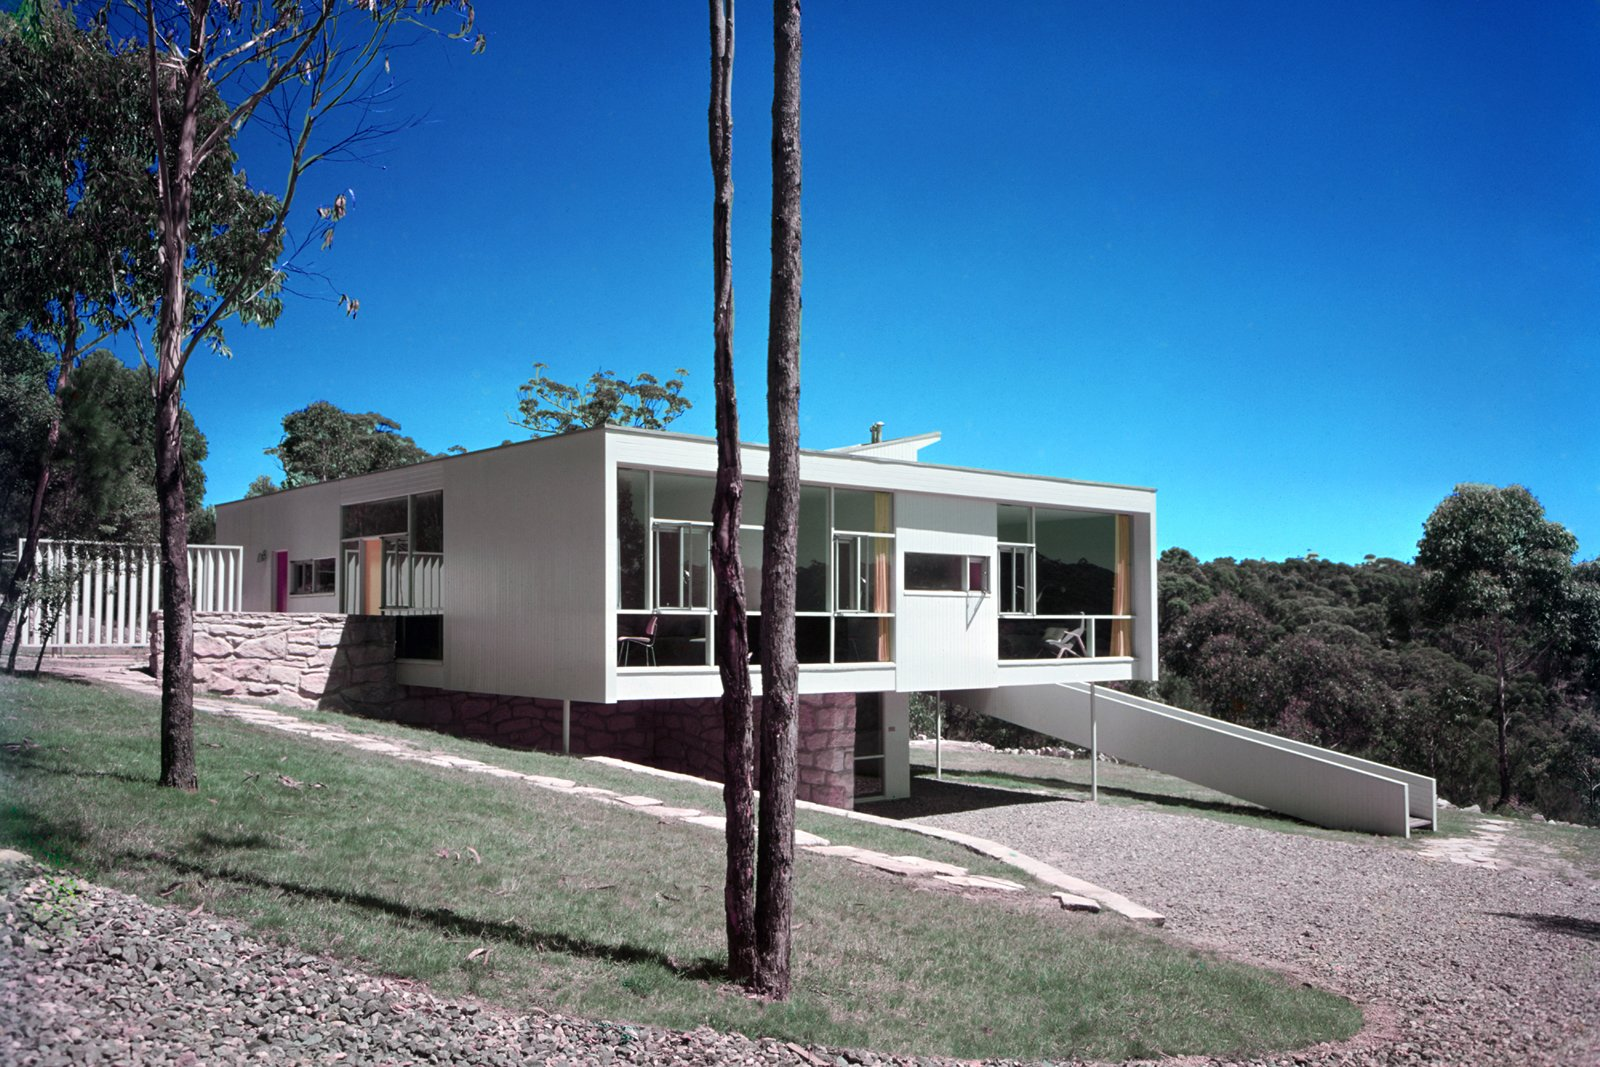 Rose Seidler House, Wahroonga, Sydney, Australia, 1948-50. Photo © Marcel Seidler  Photo 6 of 12 in Harry Seidler: Architecture, Art, and Collaborative Design